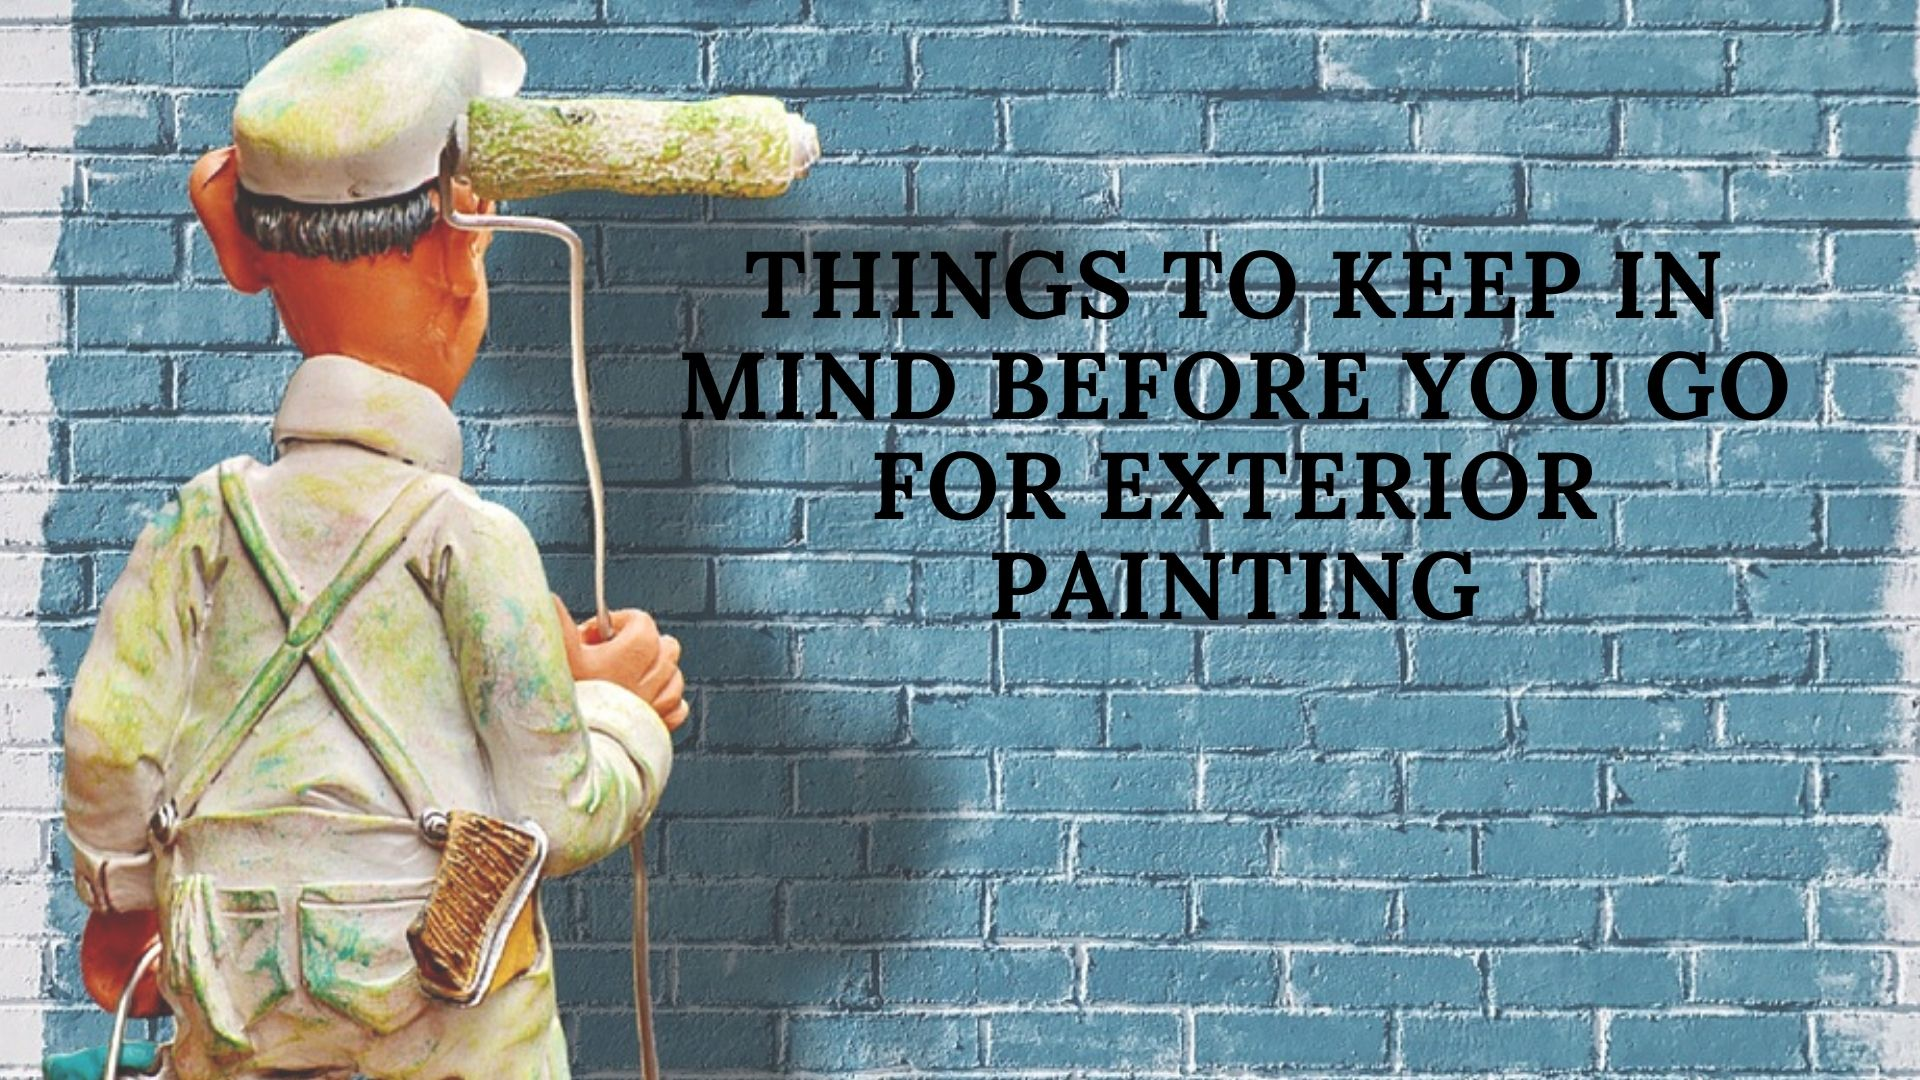 Things To Keep In Mind Before You Go For Exterior Painting